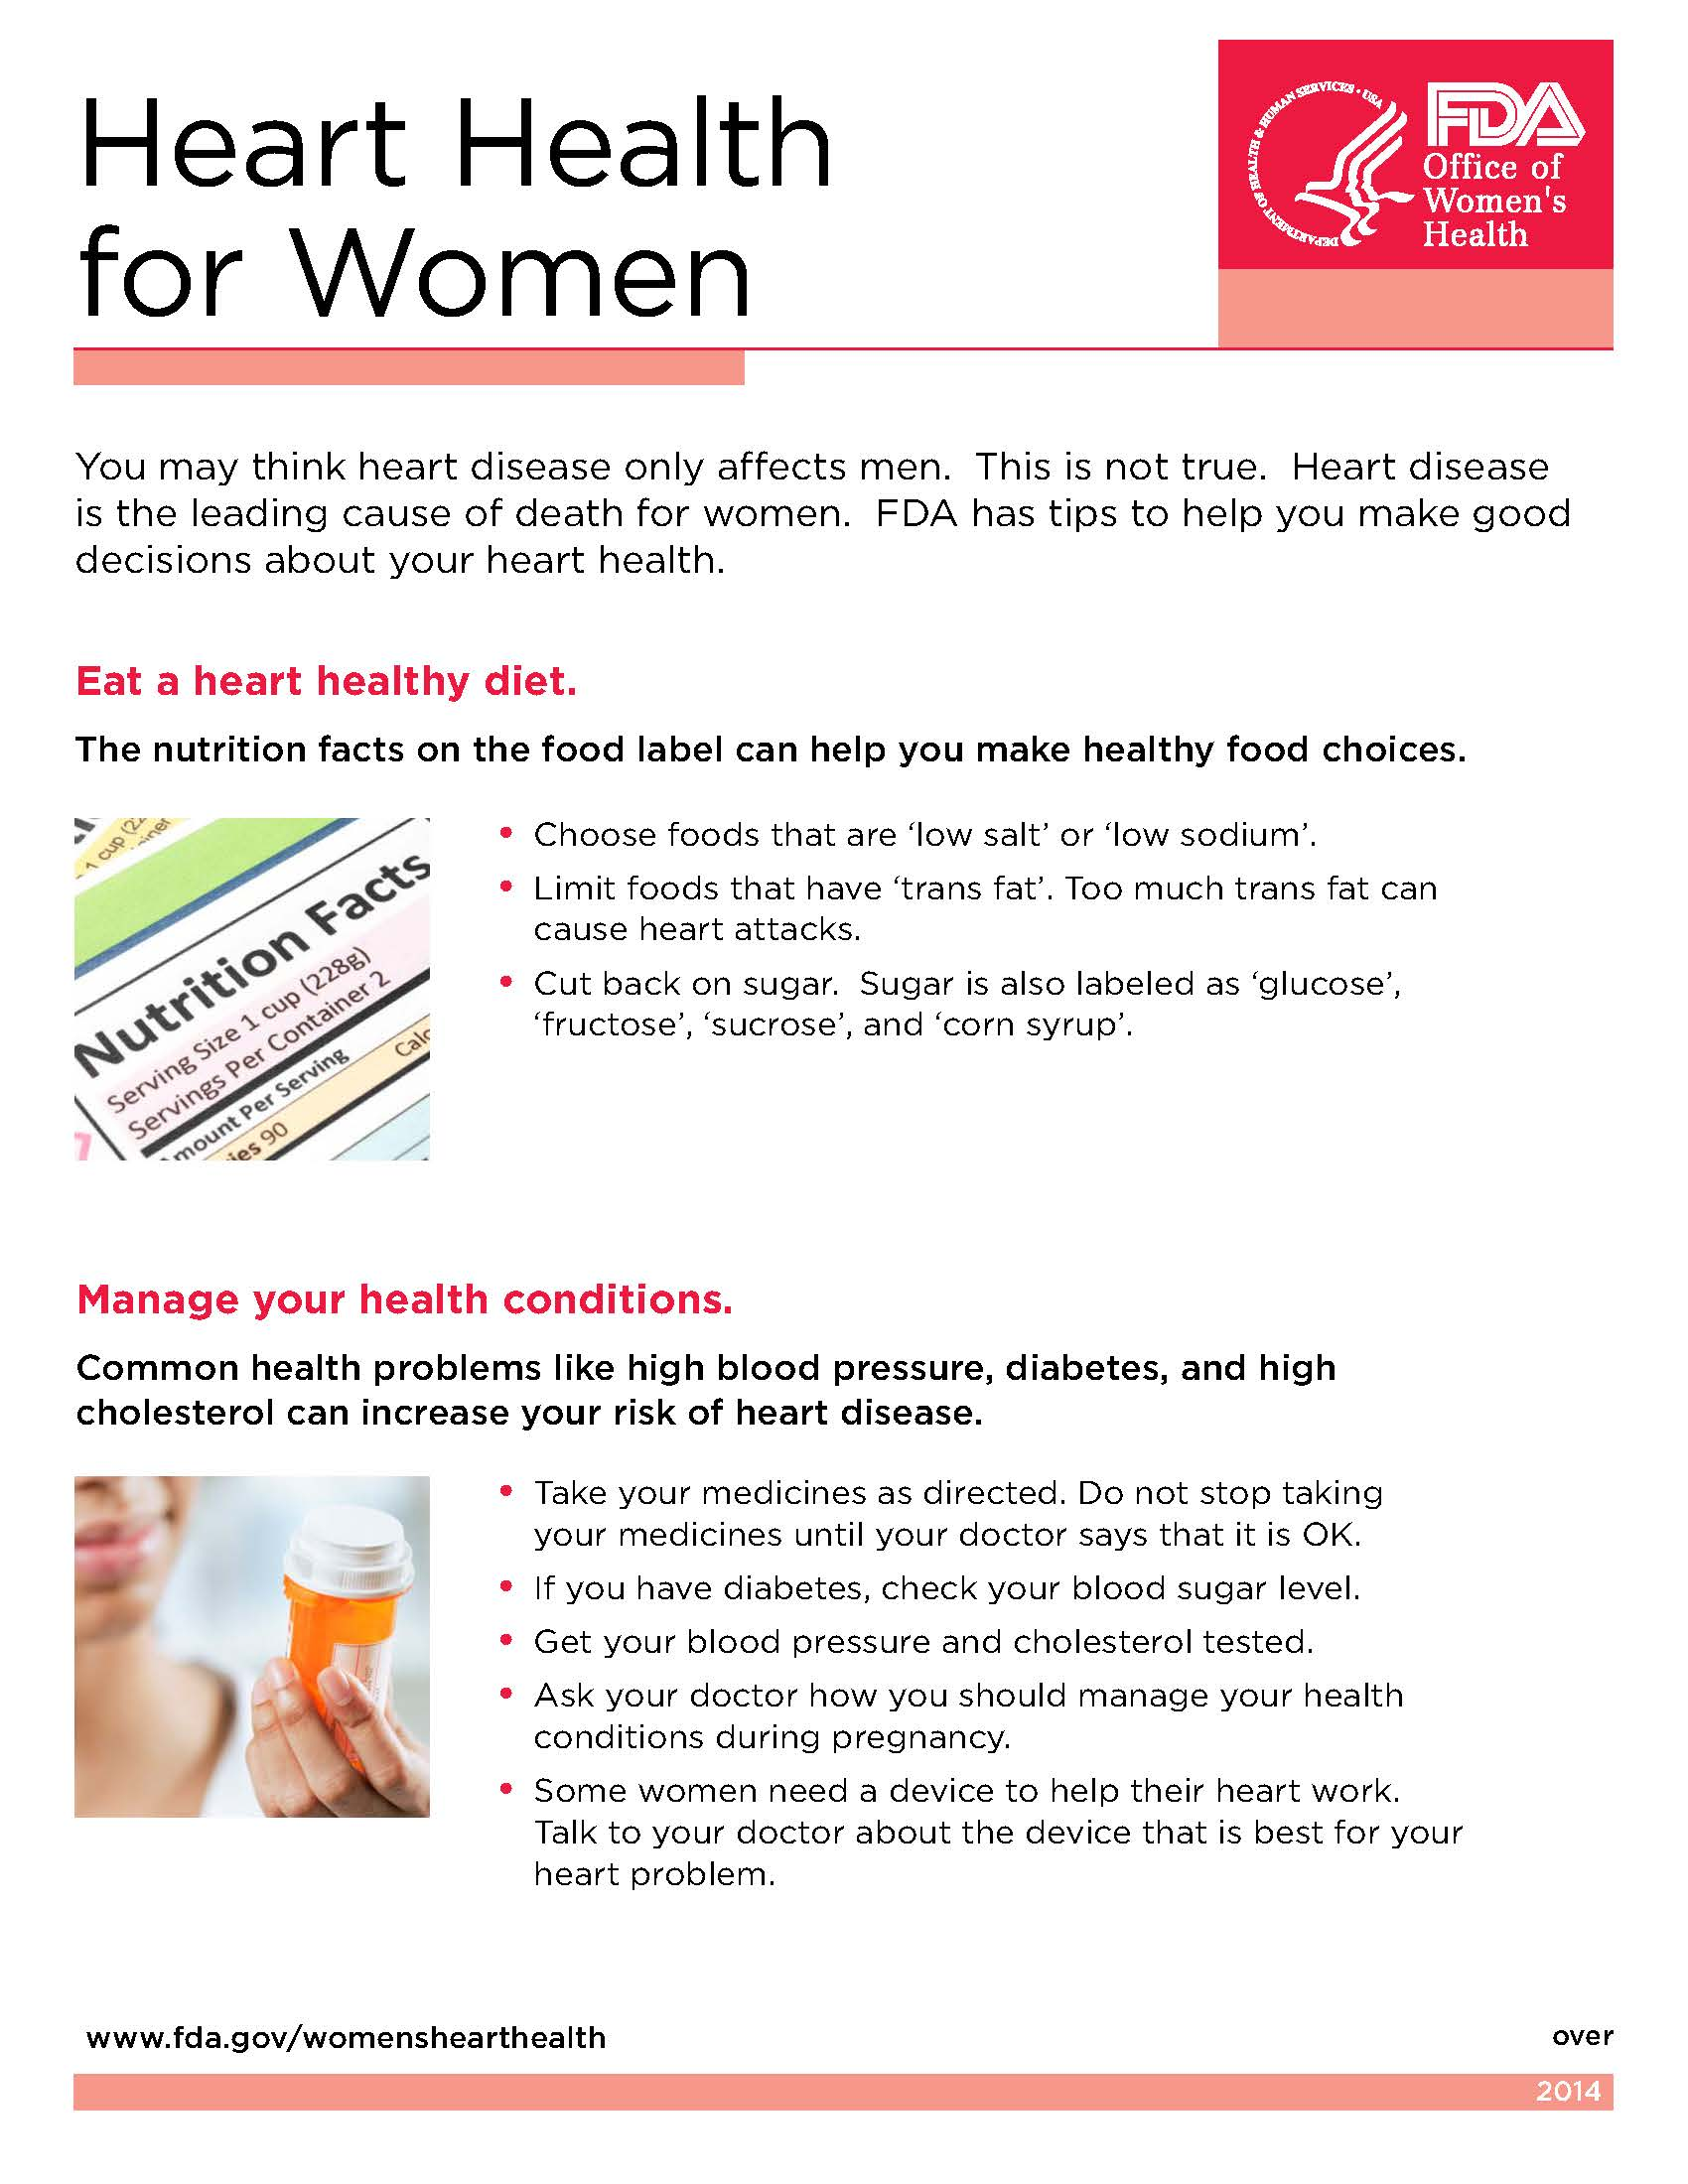 Heart Health for Women 2014_Page_1